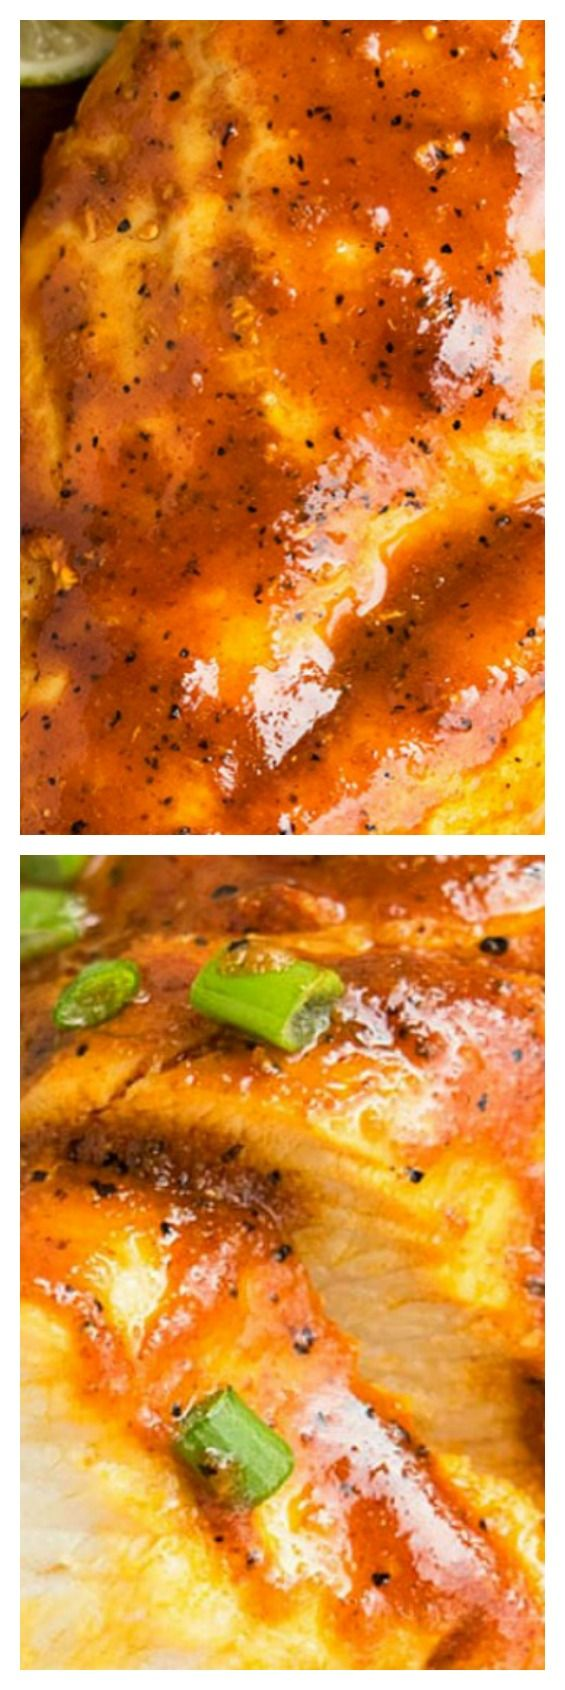 Chili lime chicken fabulous food drinks pinterest lime chili lime chicken fabulous food drinks pinterest lime chicken recipes chili lime chicken and chili lime forumfinder Image collections